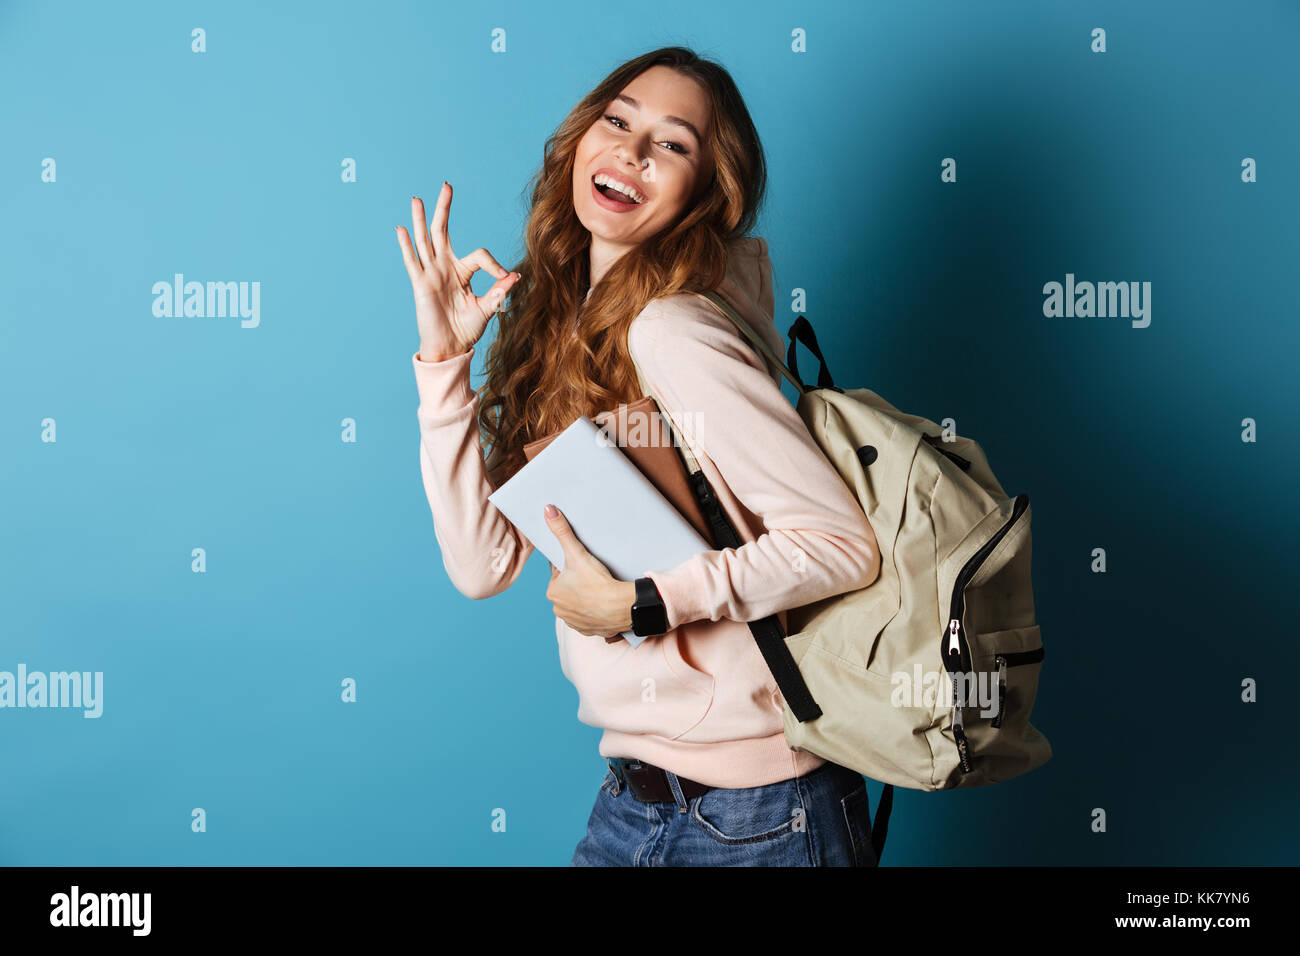 d0dae1b2ae Portrait of a happy friendly girl student with backpack holding books and  showing ok gesture isolated over blue background